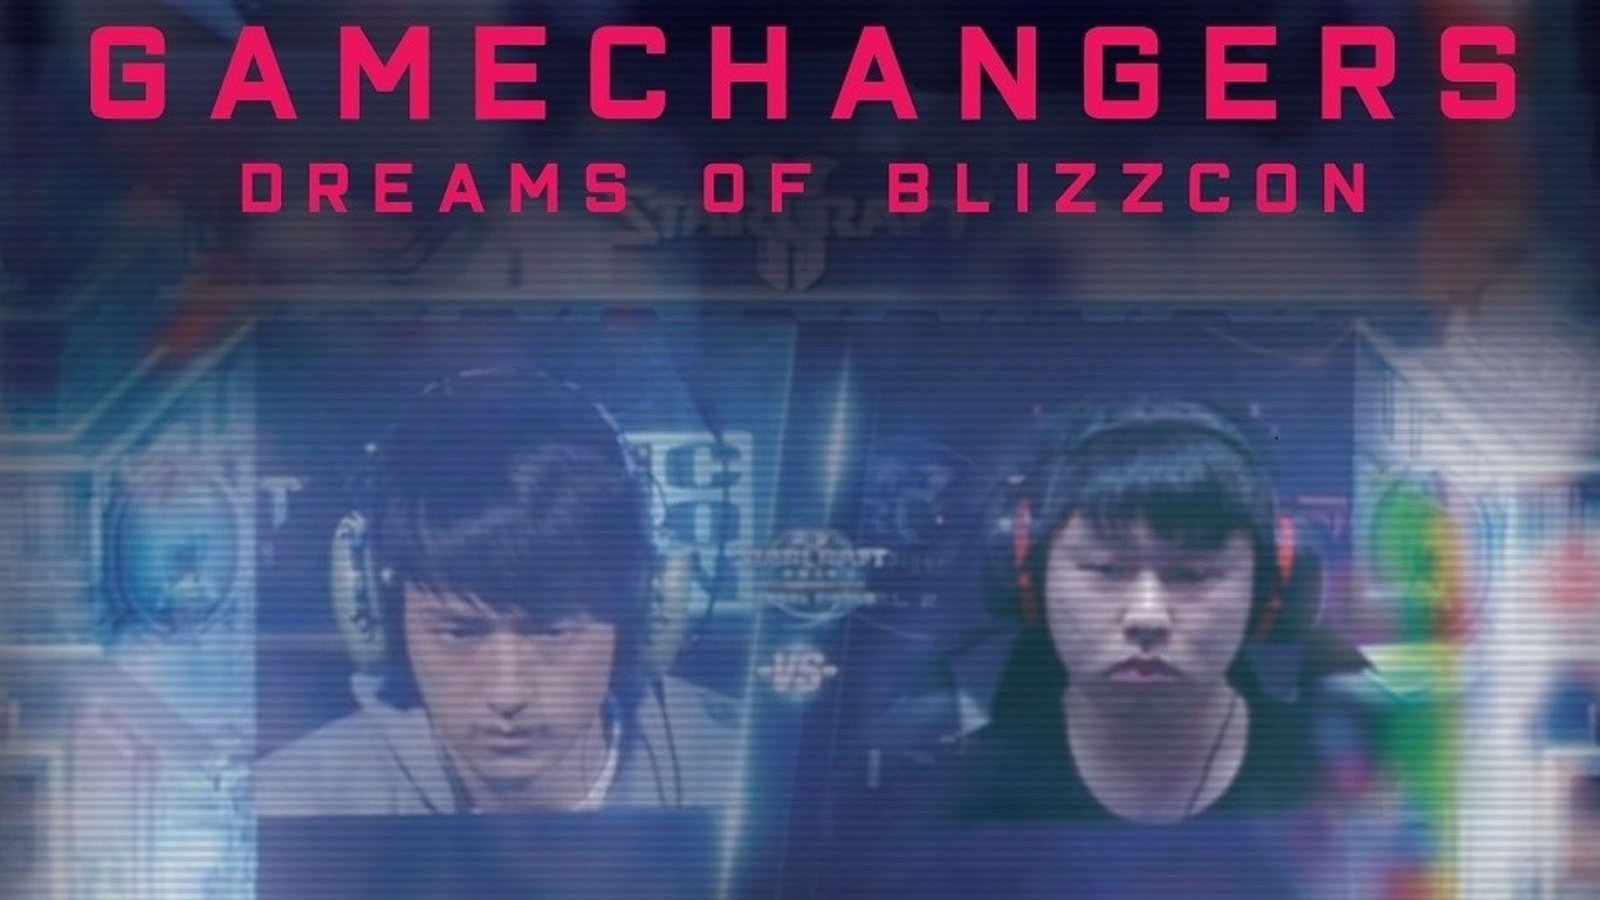 The Gamechangers: Dreams of Blizzcon - The High-Stakes Lifestyles of Professional Gamers